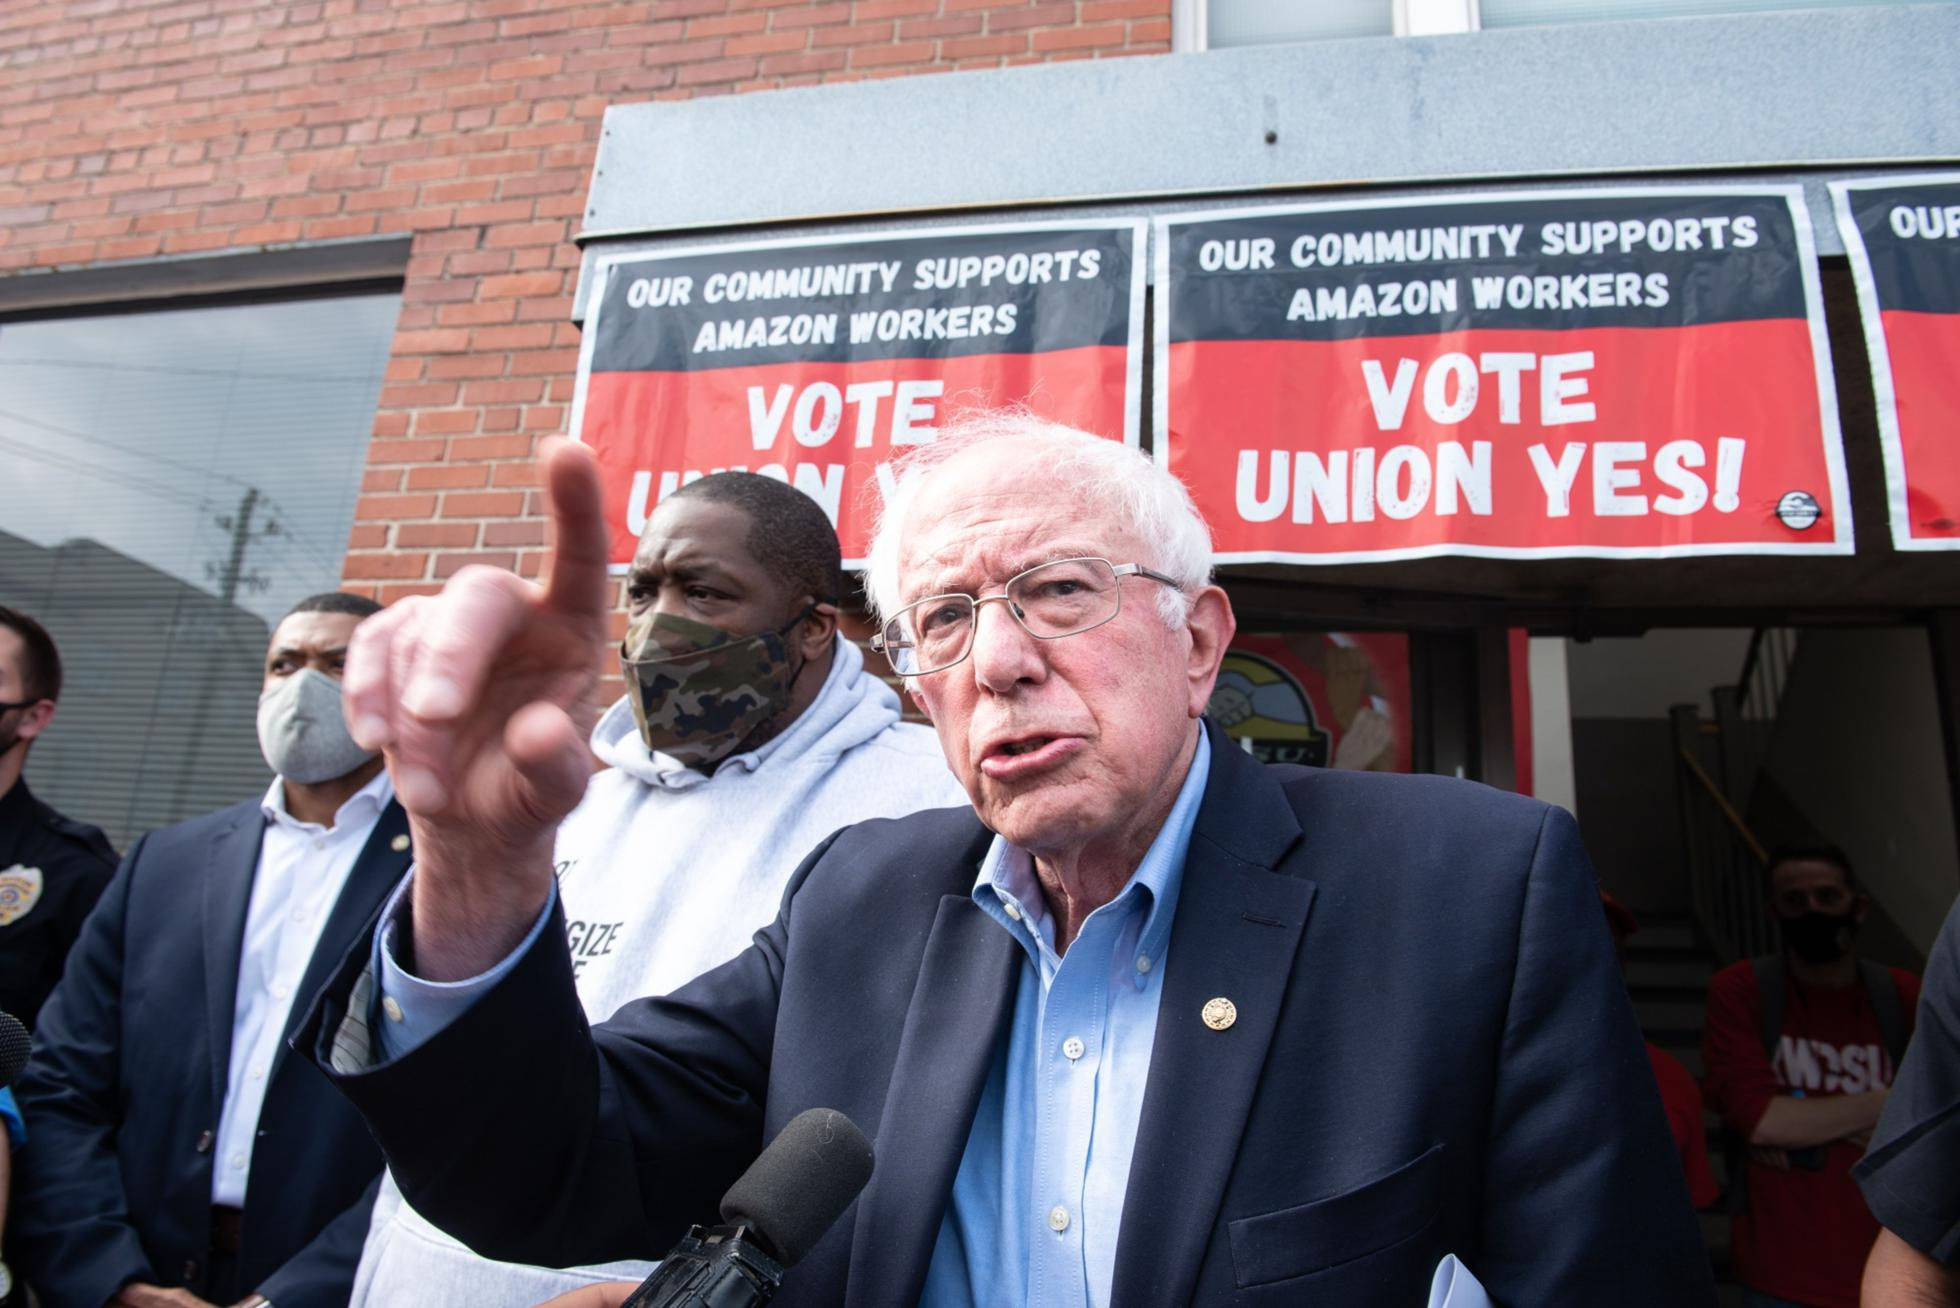 Senator Bernie Sanders traveled to Alabama on March 26, 2021 to throw his support behind the union.